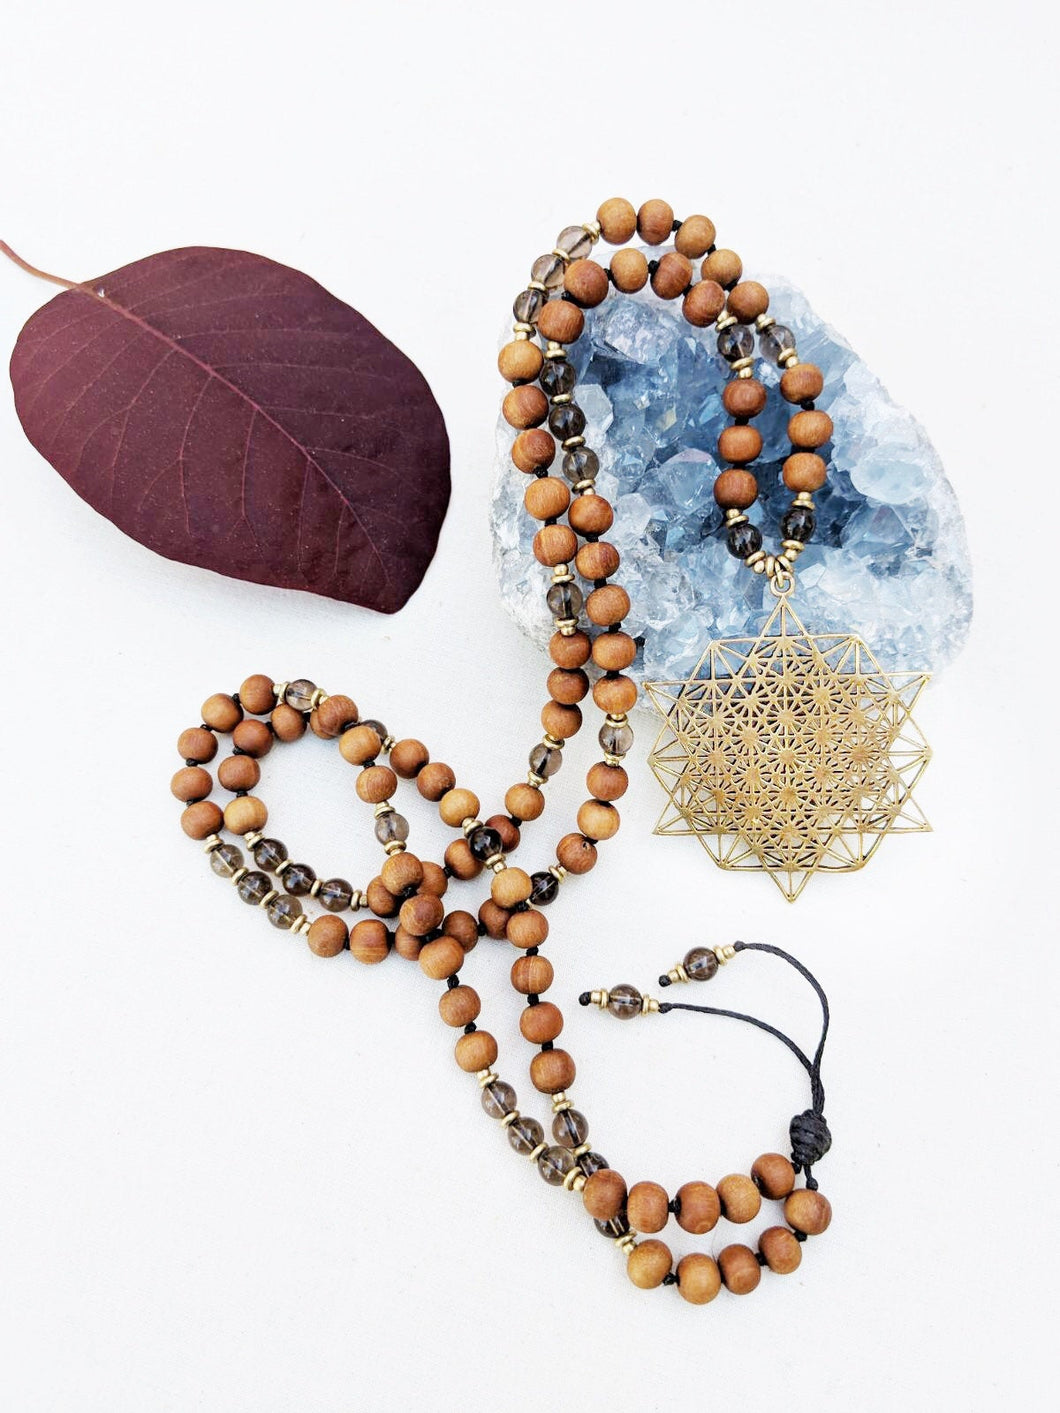 Yoga Mala | Smoky Quartz Sandalwood Sacred Geometry Pendant Necklace | 108 Beads